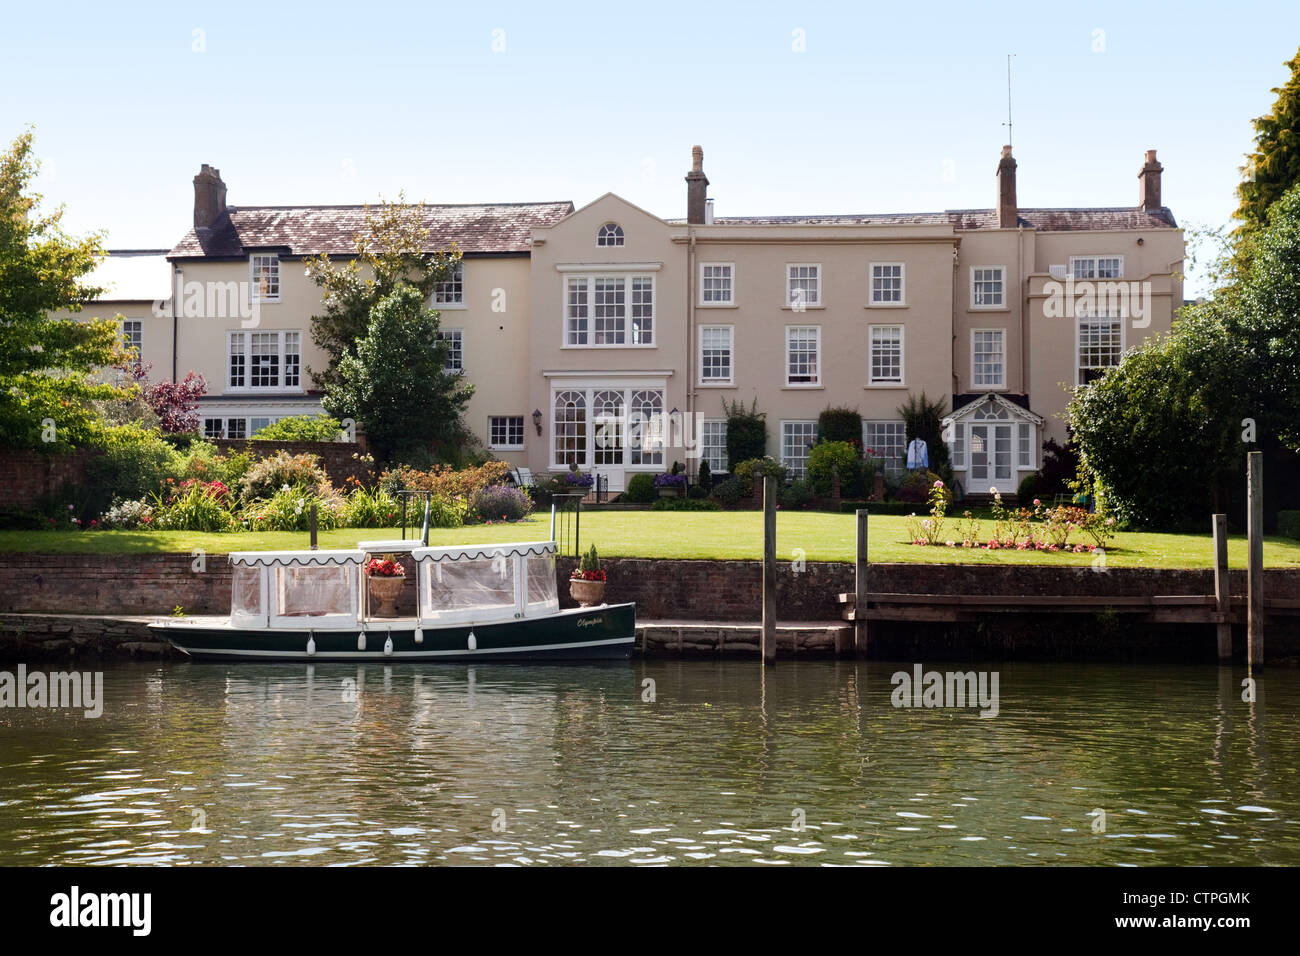 Luxury house and moored boat on the River Thames at Wallingford Oxfordshire UK Stock Photo